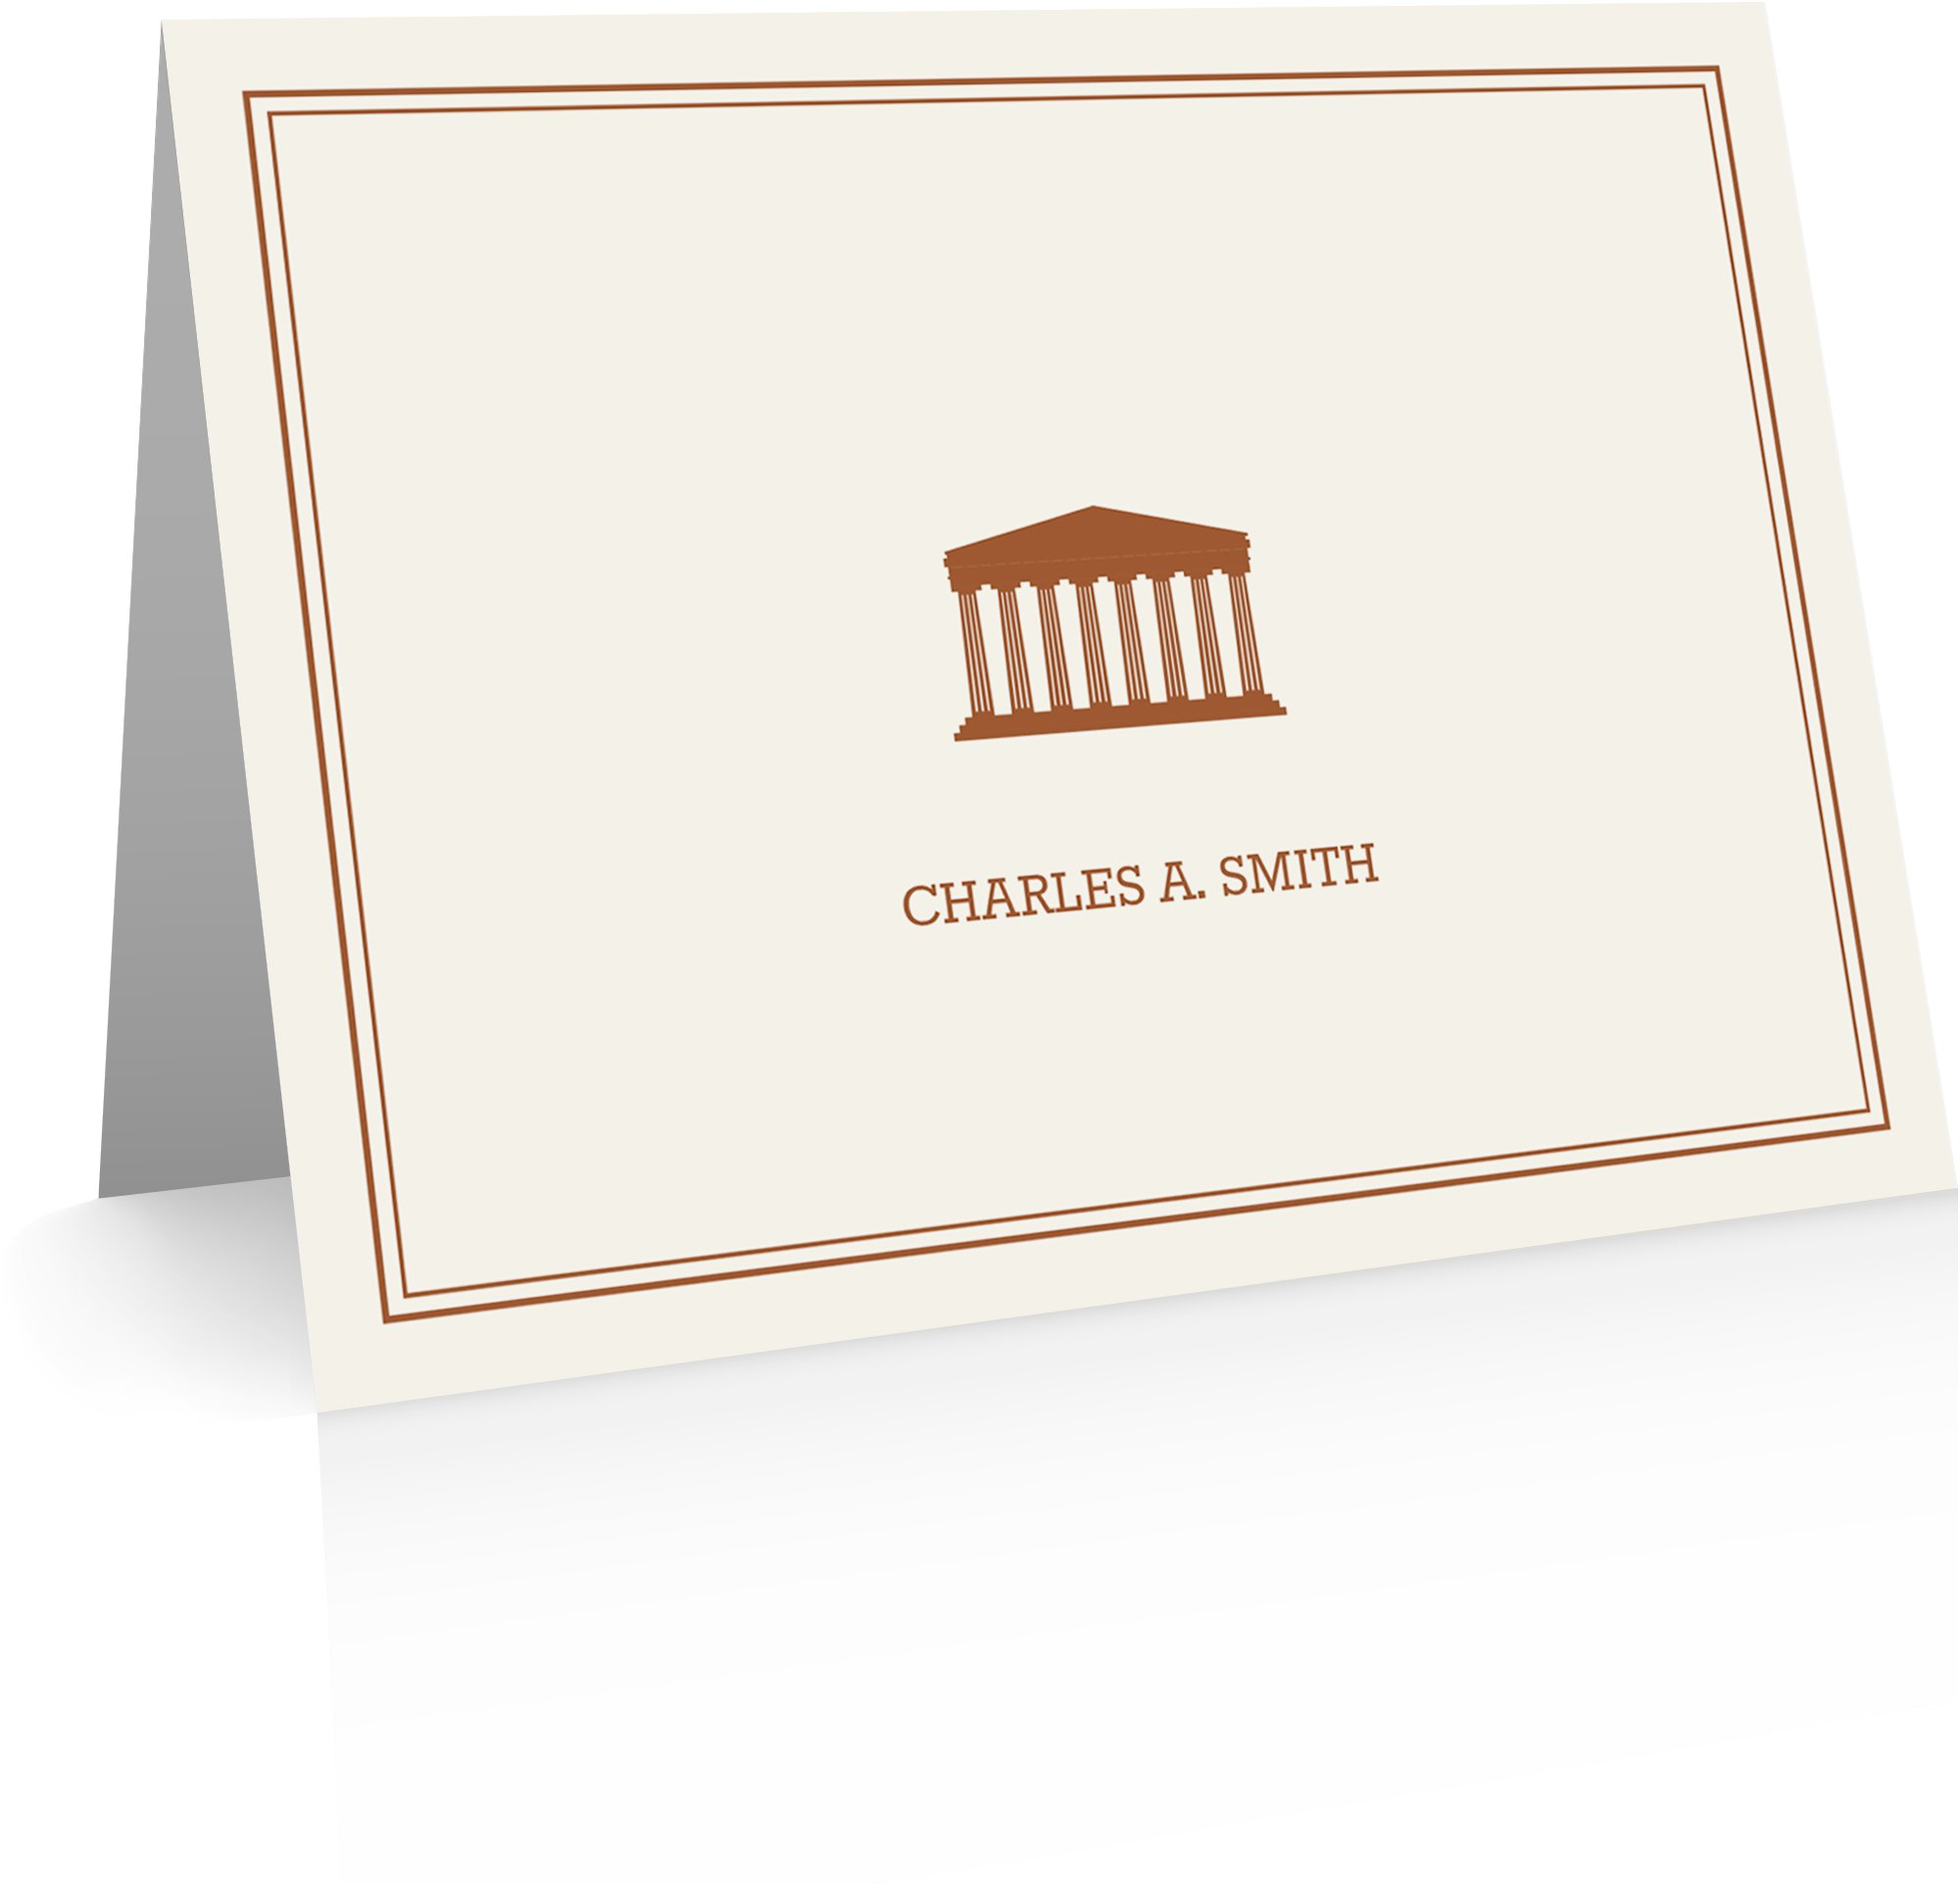 Personalized Gifts - Greek Columns Stationery (24 Foldover Cards and Envelopes)